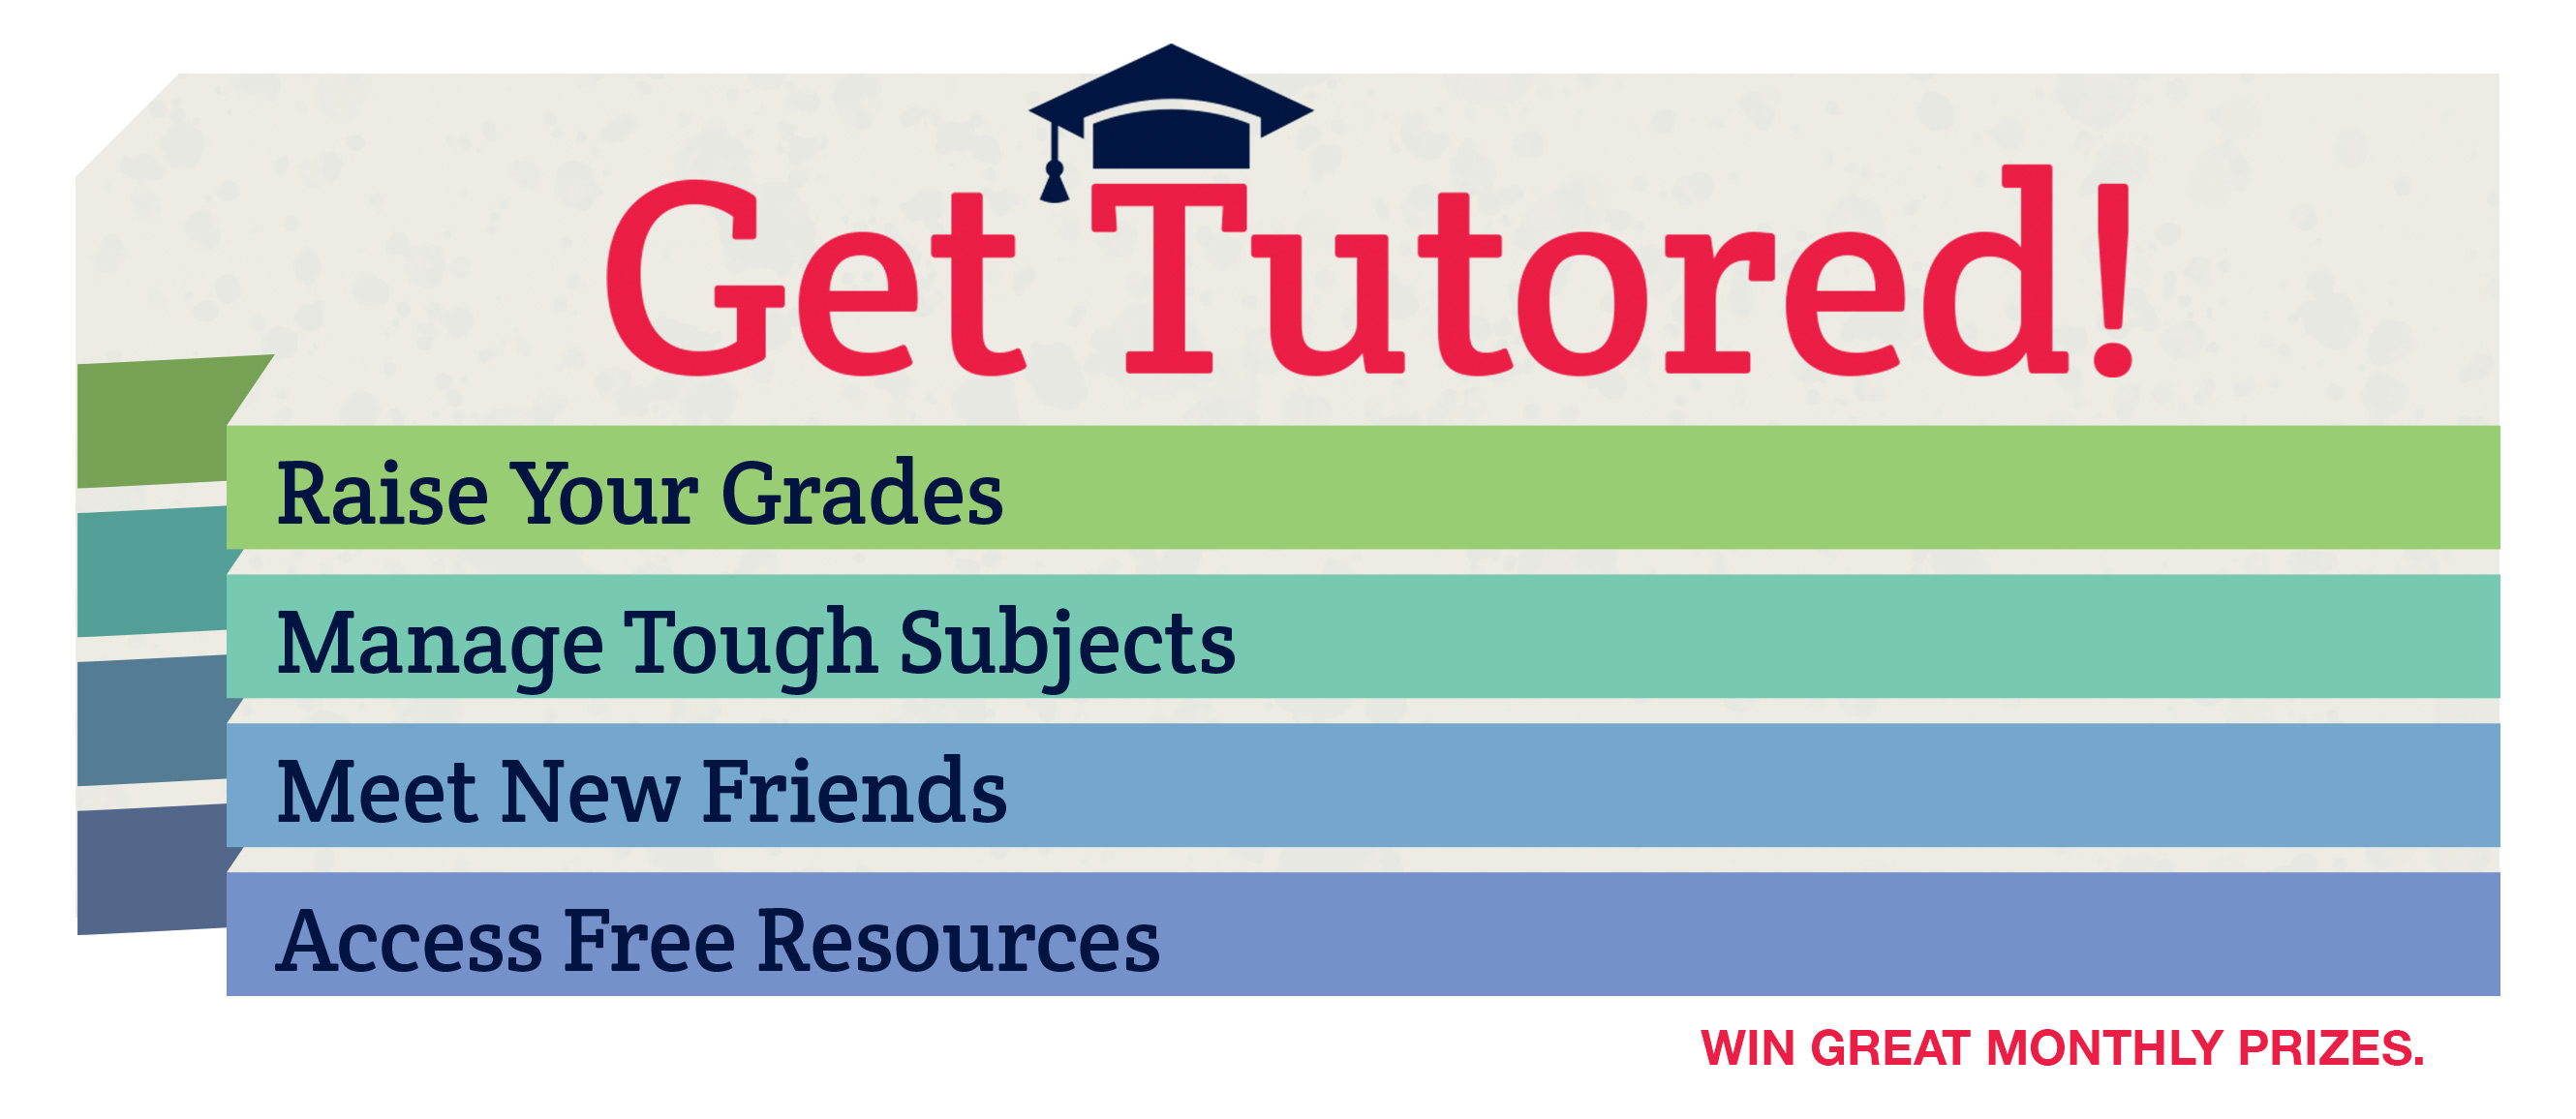 Get Tutored! Raise Your Grades. Manage Tough Subjects. Meet New Friends. Access Free Resources. Win Great Monthly Prizes.